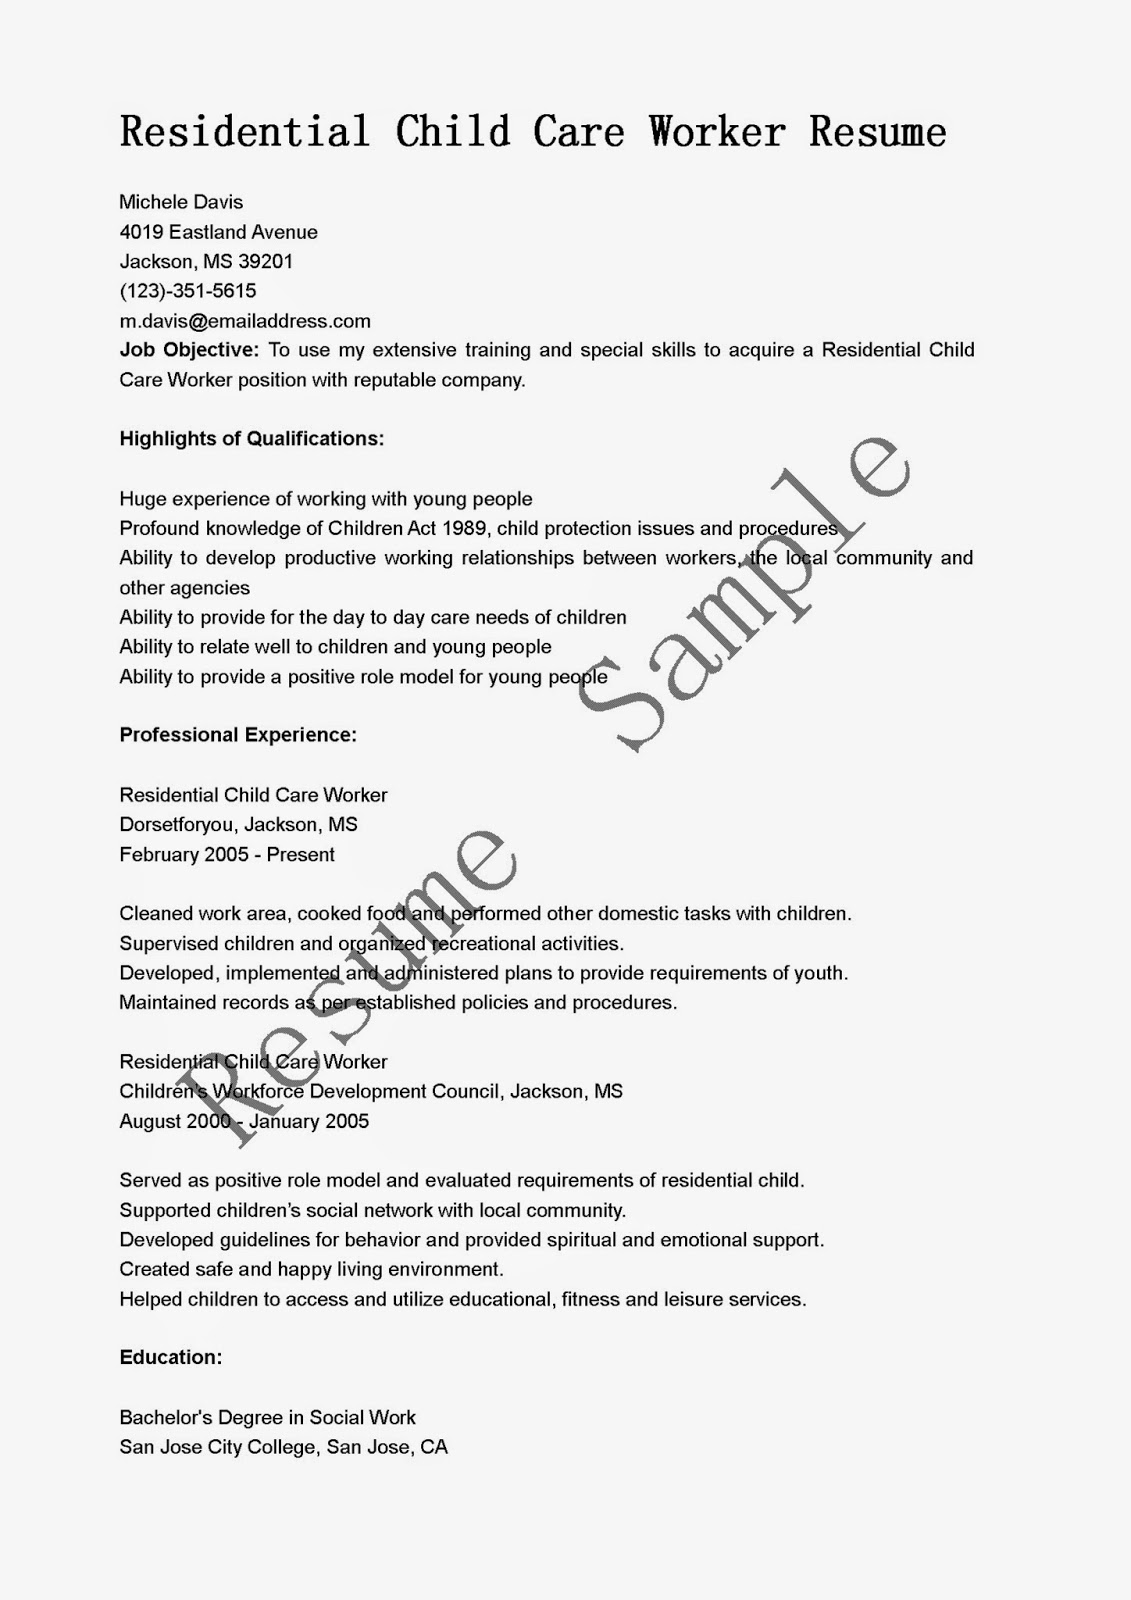 sample resume objectives for daycare worker resume for daycare worker